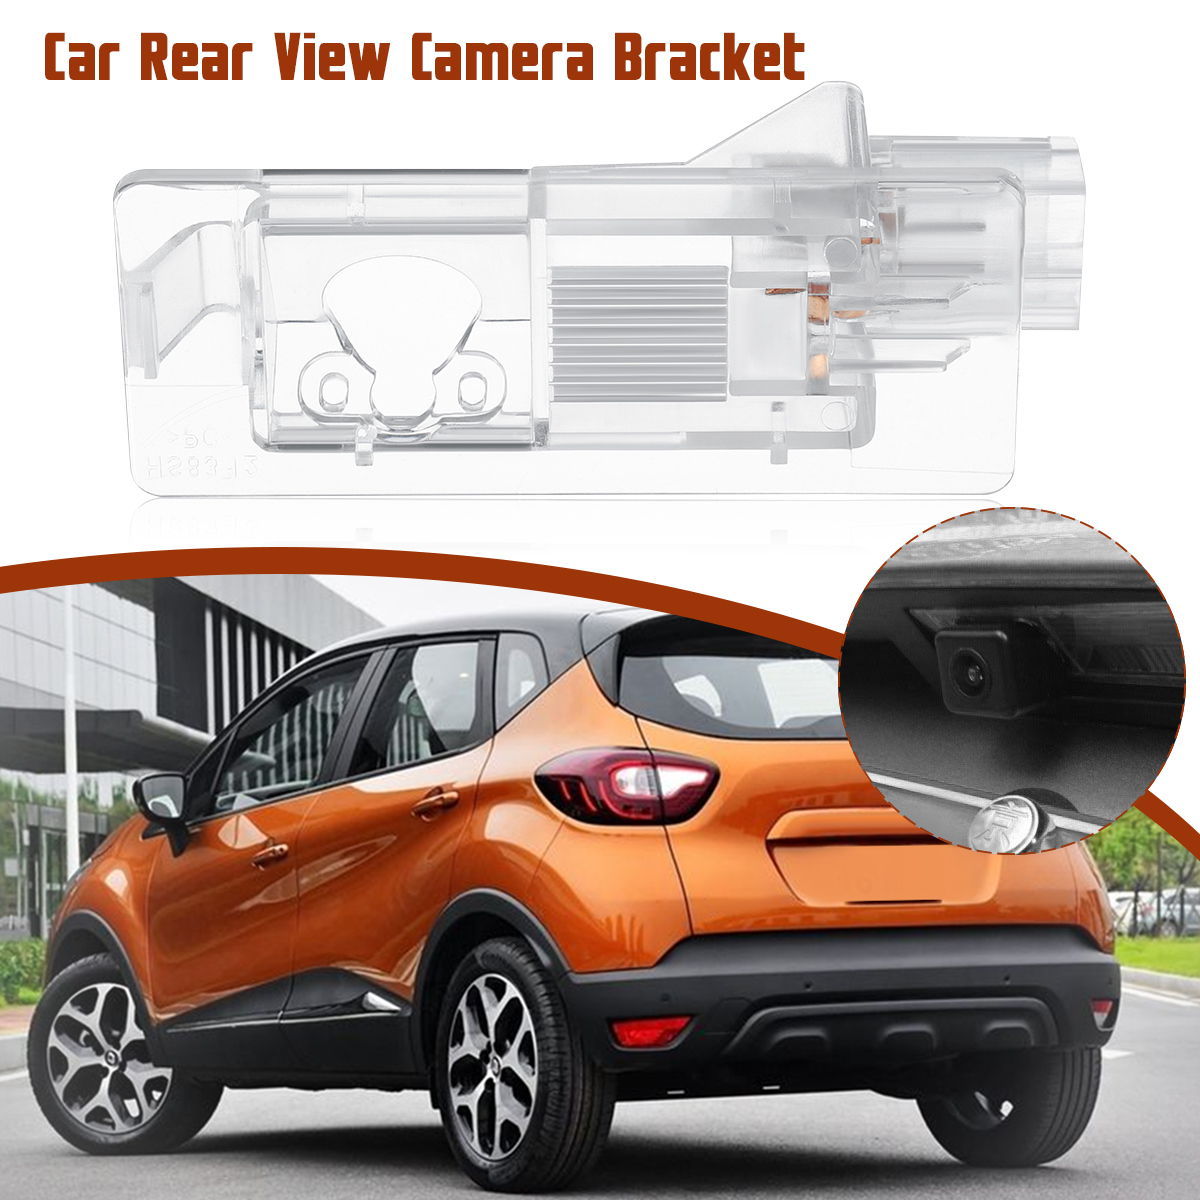 Car Parking Rear View Camera Bracket For Renault Modus Grand Scenic Lodgy Captur Duster Latitude Fluence Symbol Megane 3 Clio 4